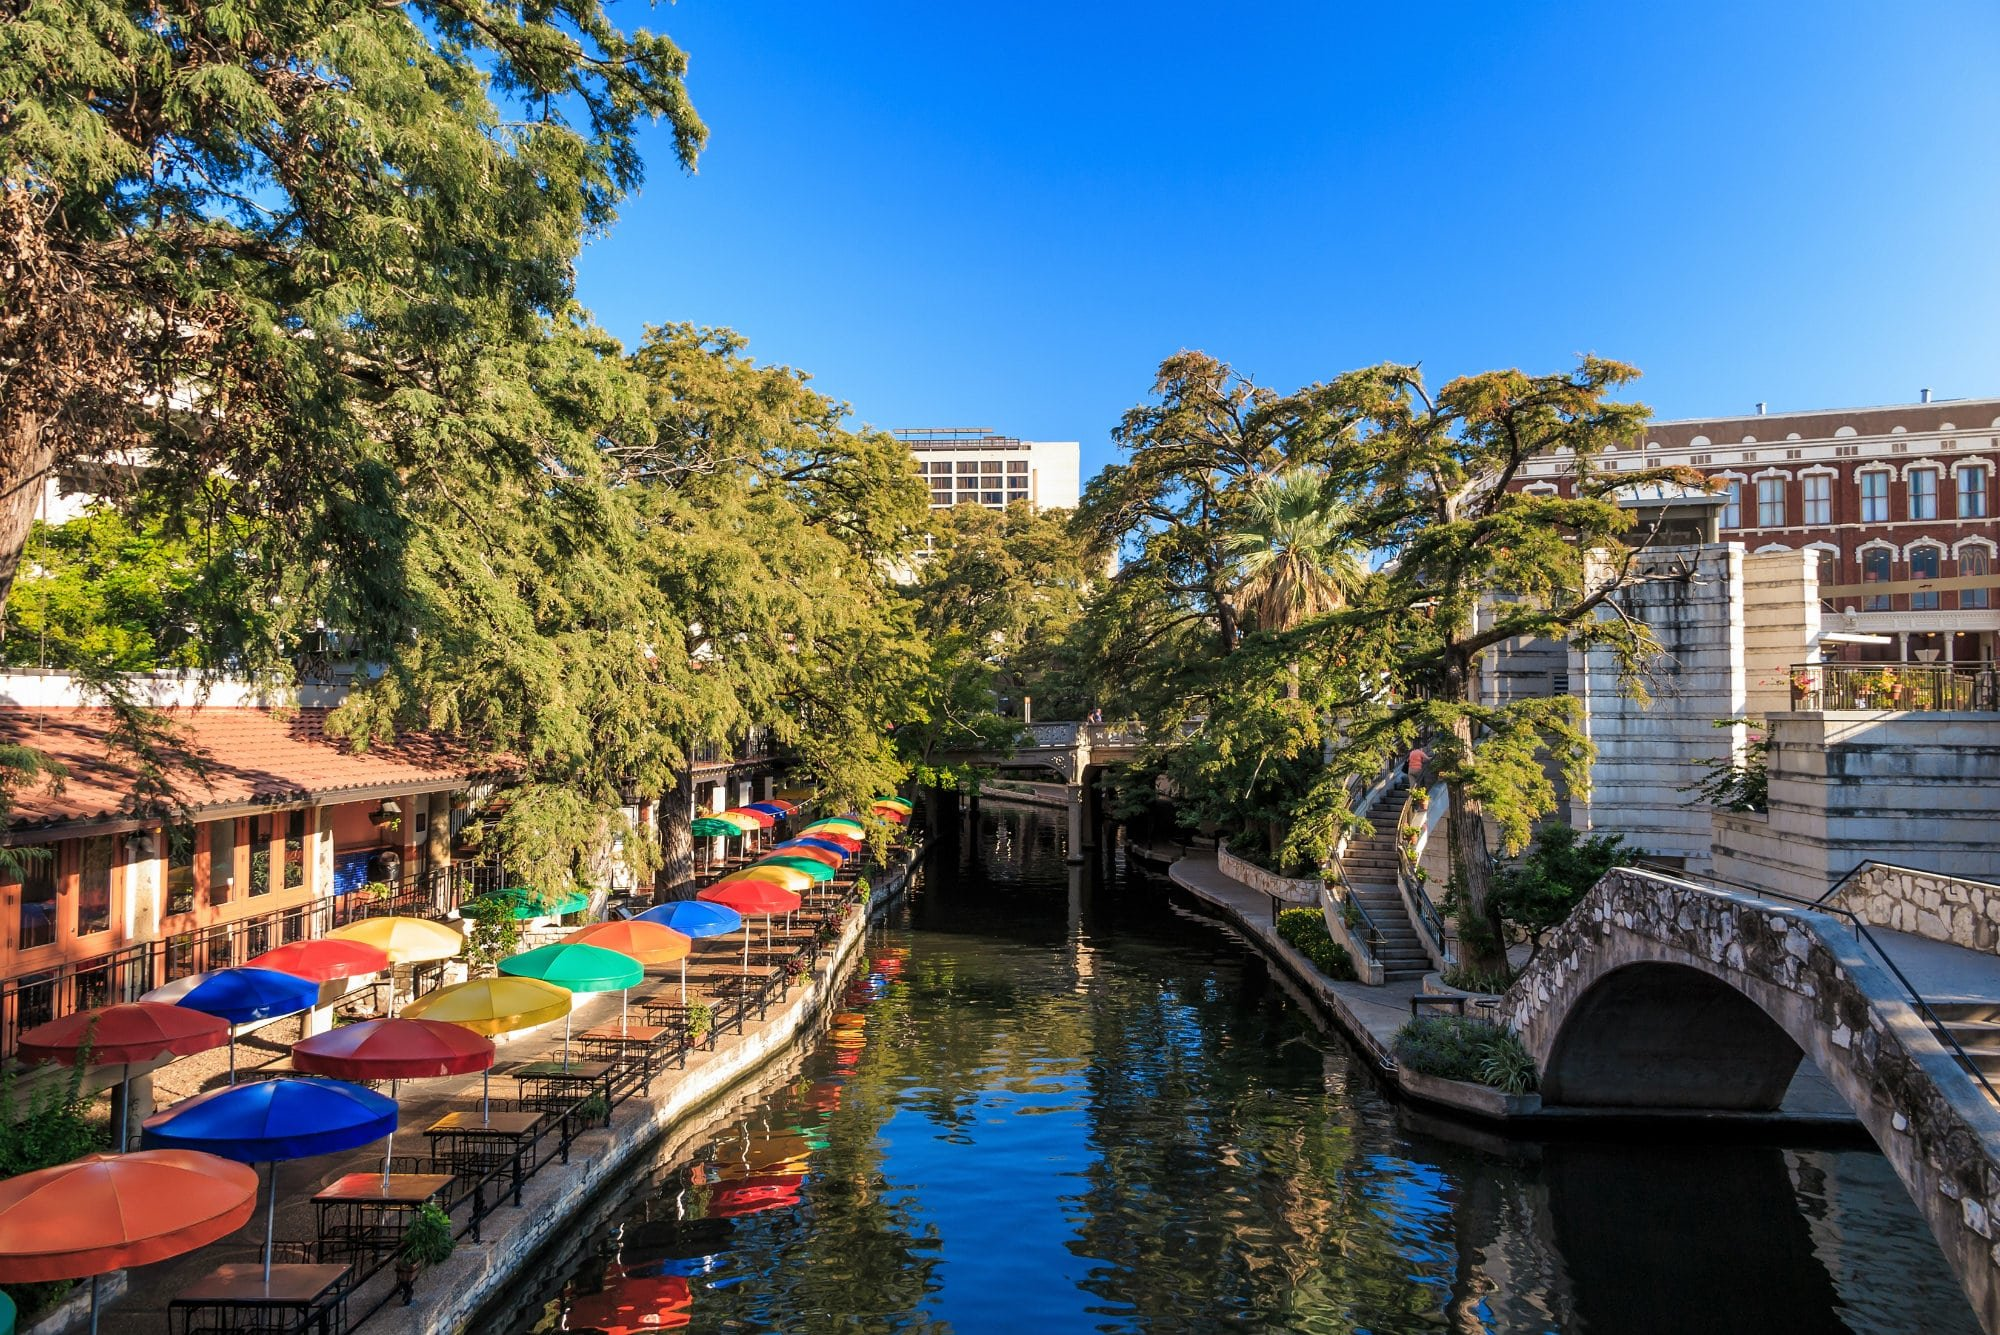 san antonio, tx famous riverwalk